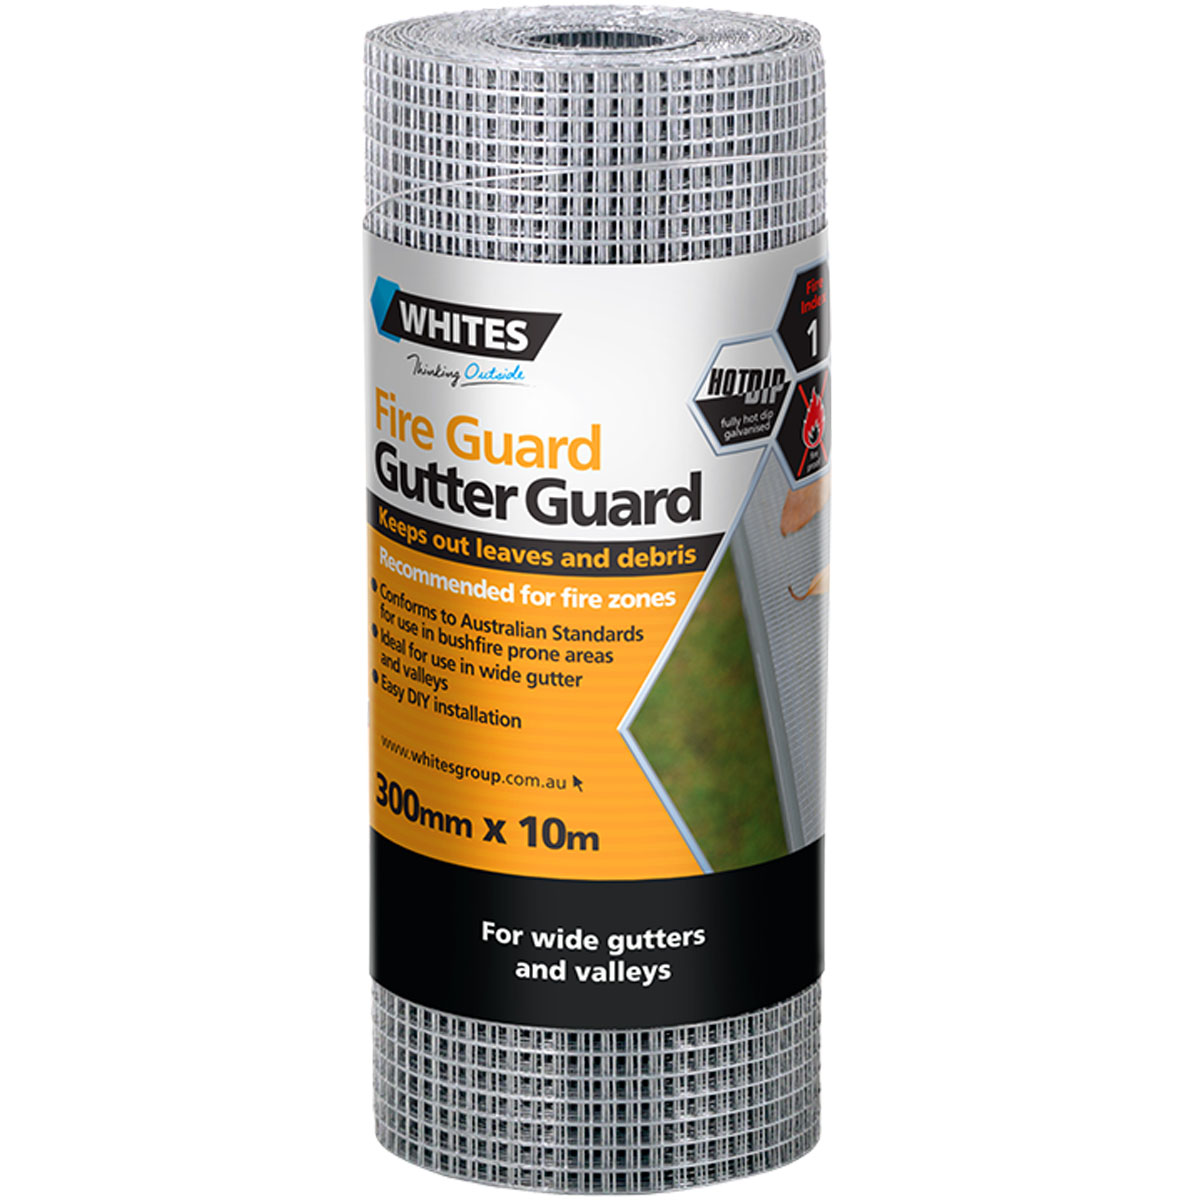 Whites Group Gutter Protection